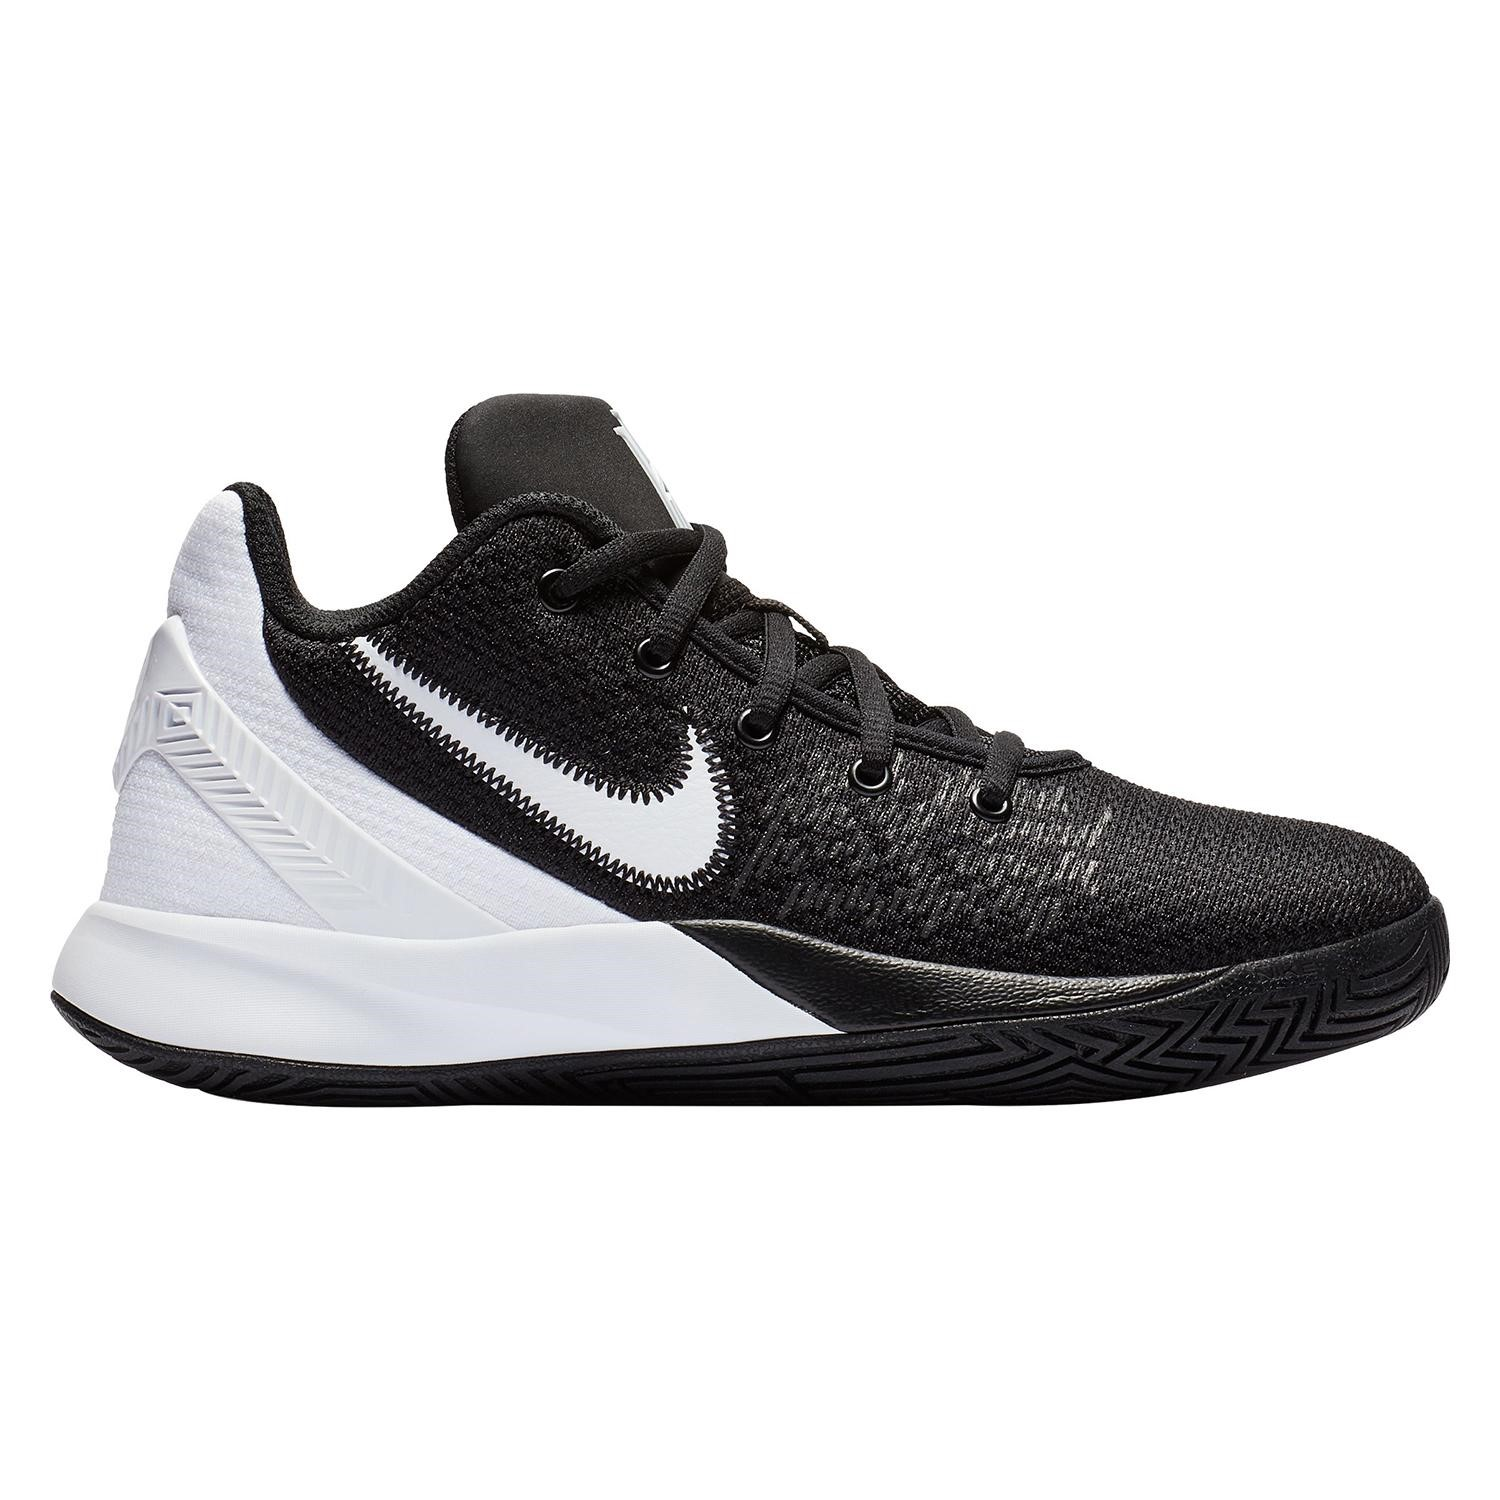 a1040566a04f Nike Kyrie Flytrap II GS - Kids Basketball Shoes - Black White ...